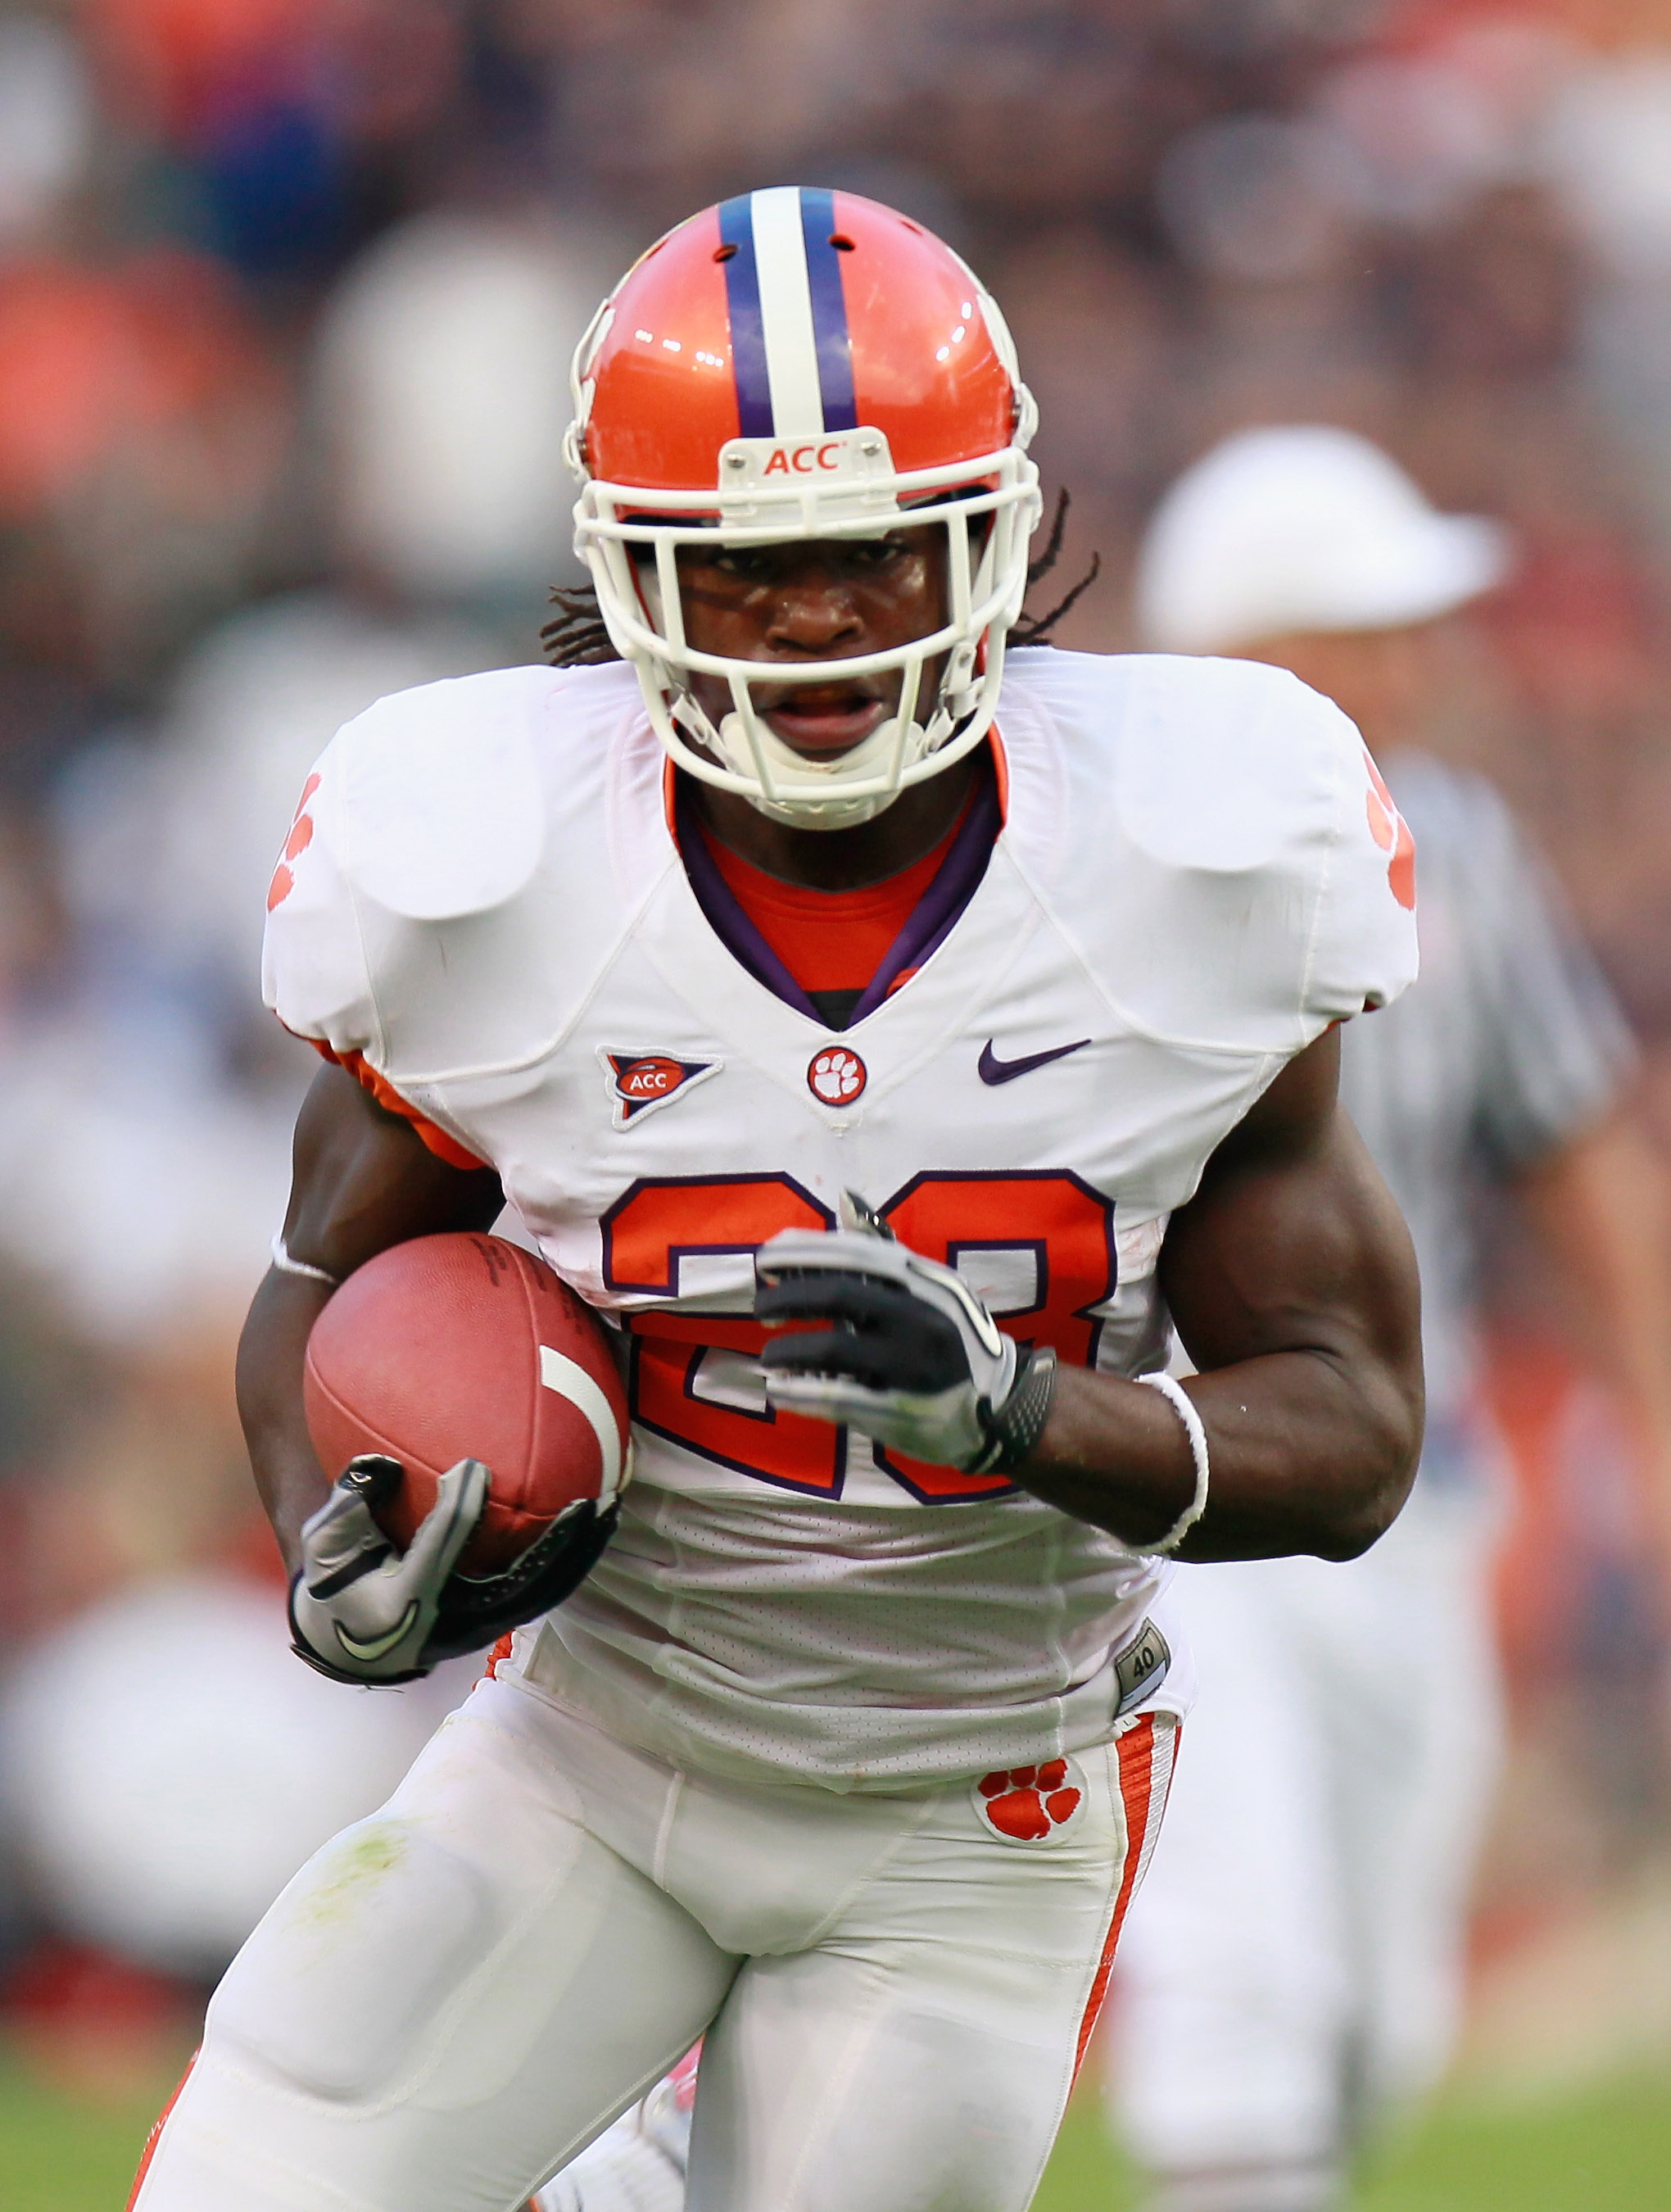 Clemson's Andre Ellington is one of the most elusive runners in the ACC.